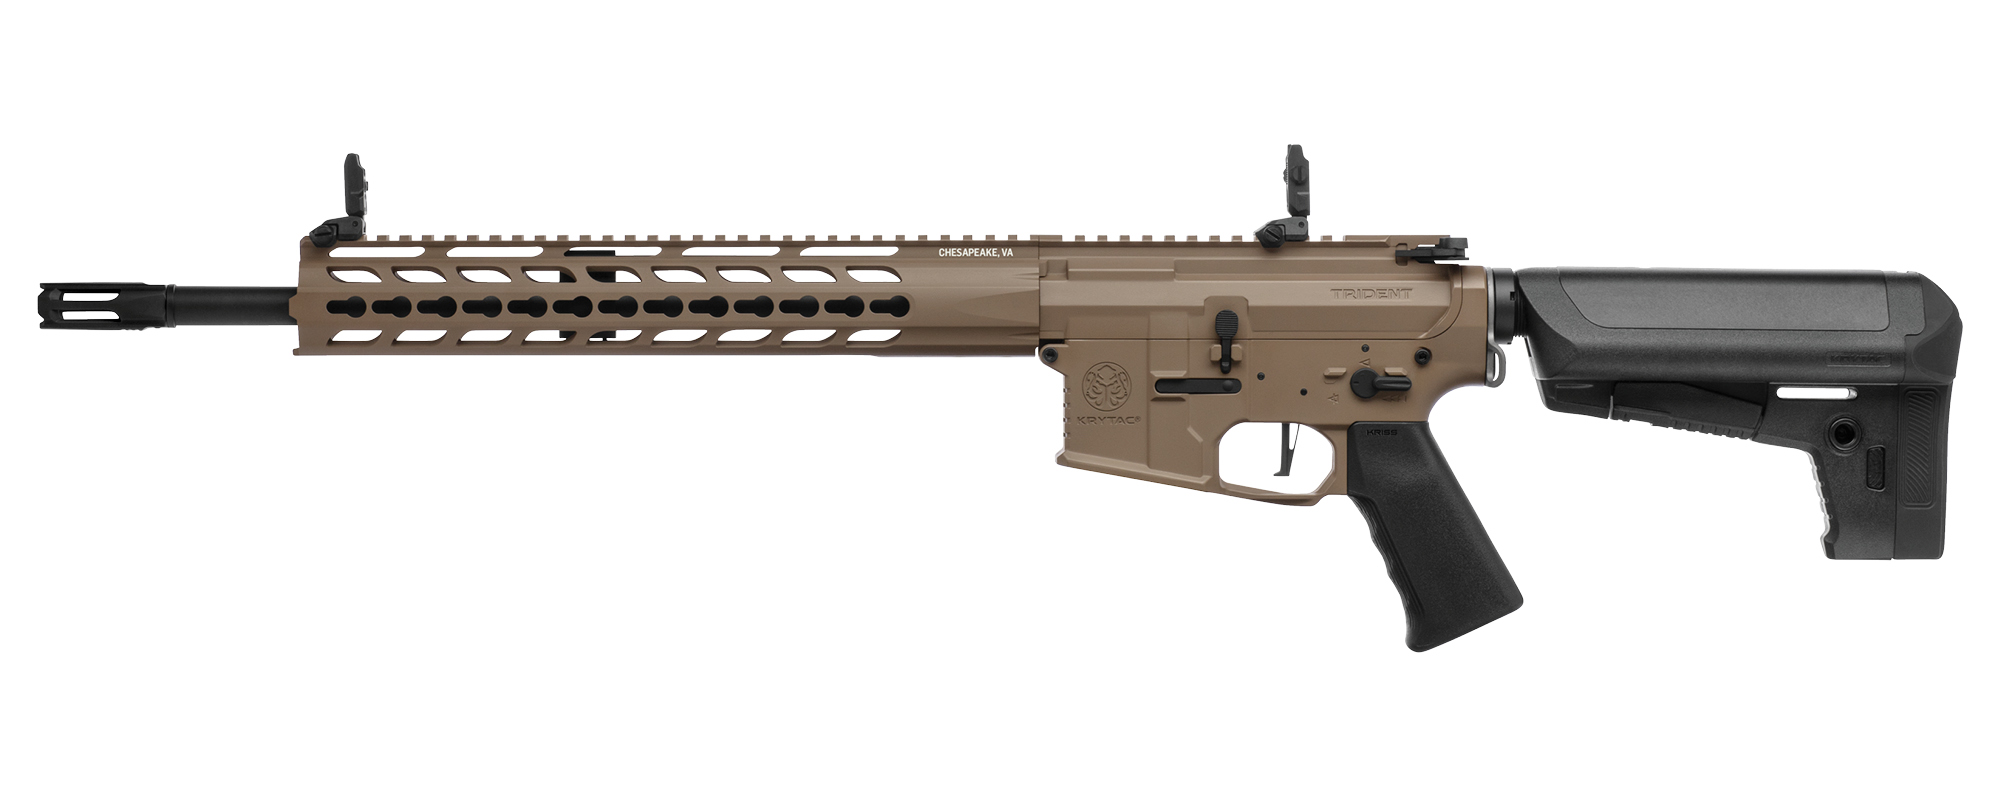 Trident MKII SPR Flat Dark Earth